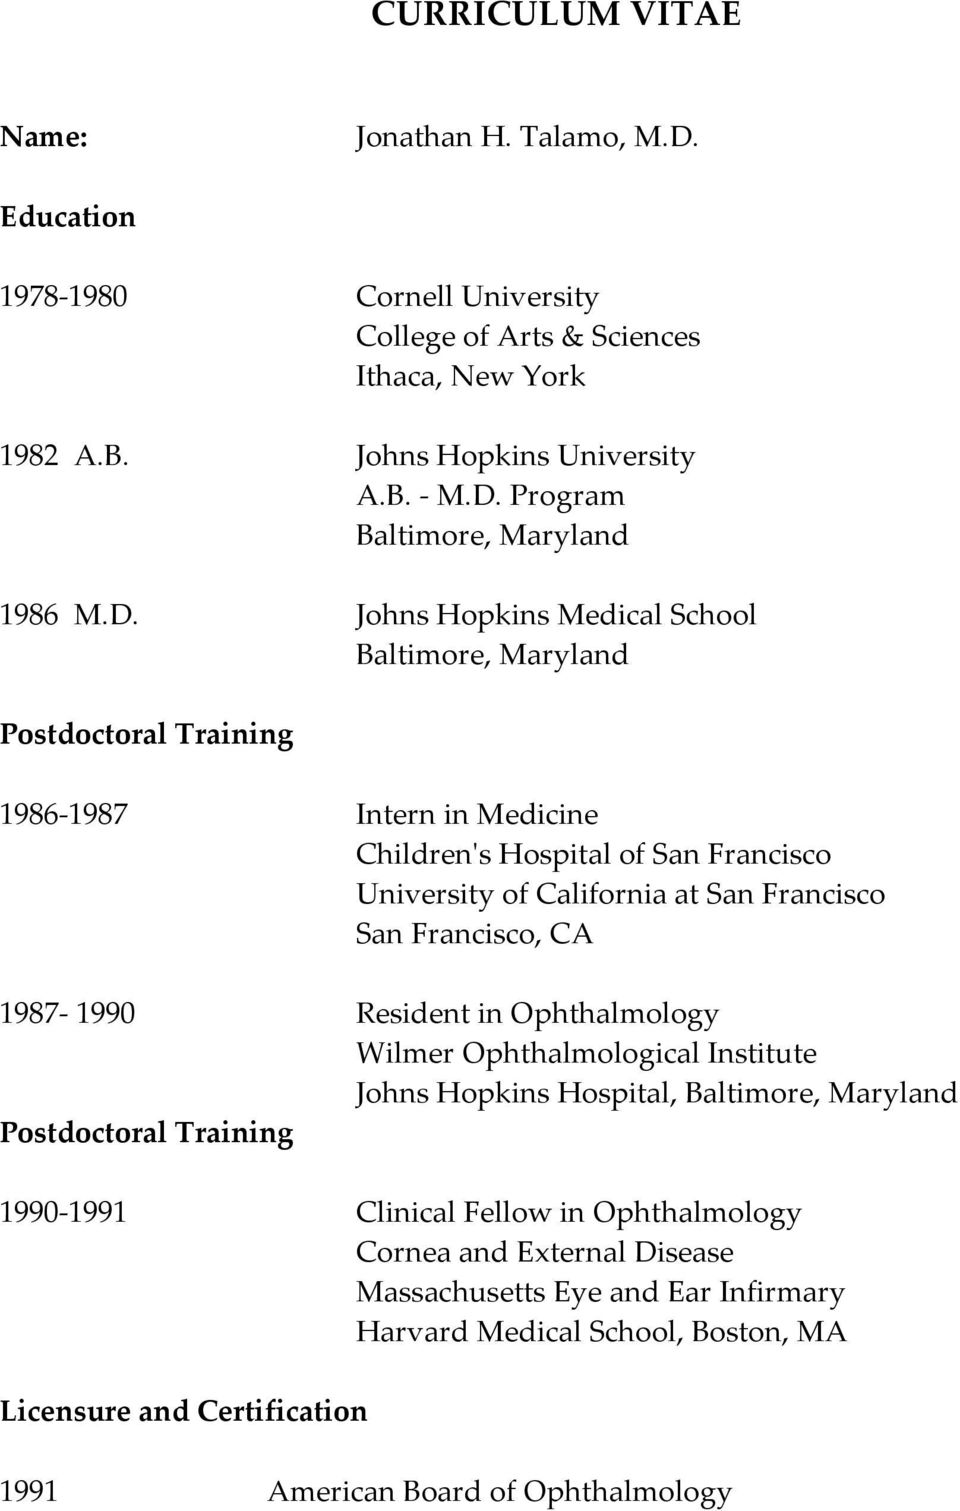 Francisco, CA 1987-1990 Resident in Ophthalmology Wilmer Ophthalmological Institute Johns Hopkins Hospital, Baltimore, Maryland Postdoctoral Training 1990-1991 Clinical Fellow in